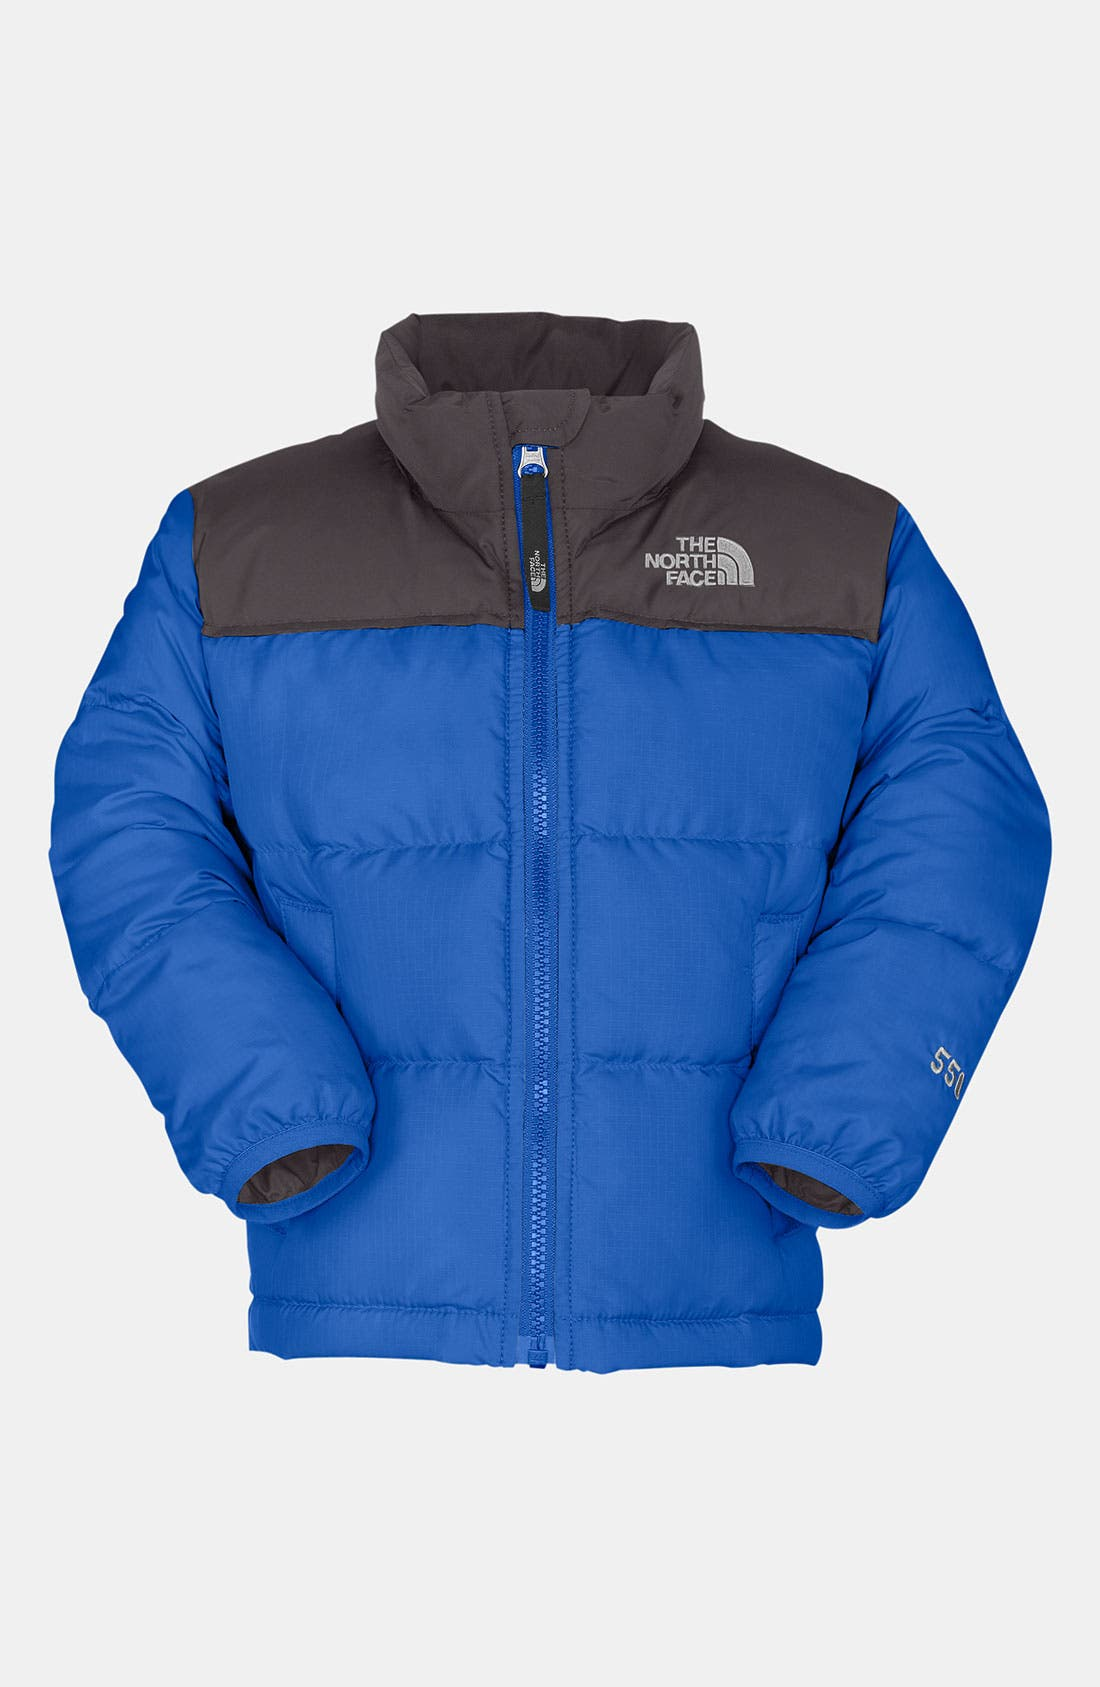 Alternate Image 1 Selected - The North Face 'Nuptse' Down Jacket (Toddler)